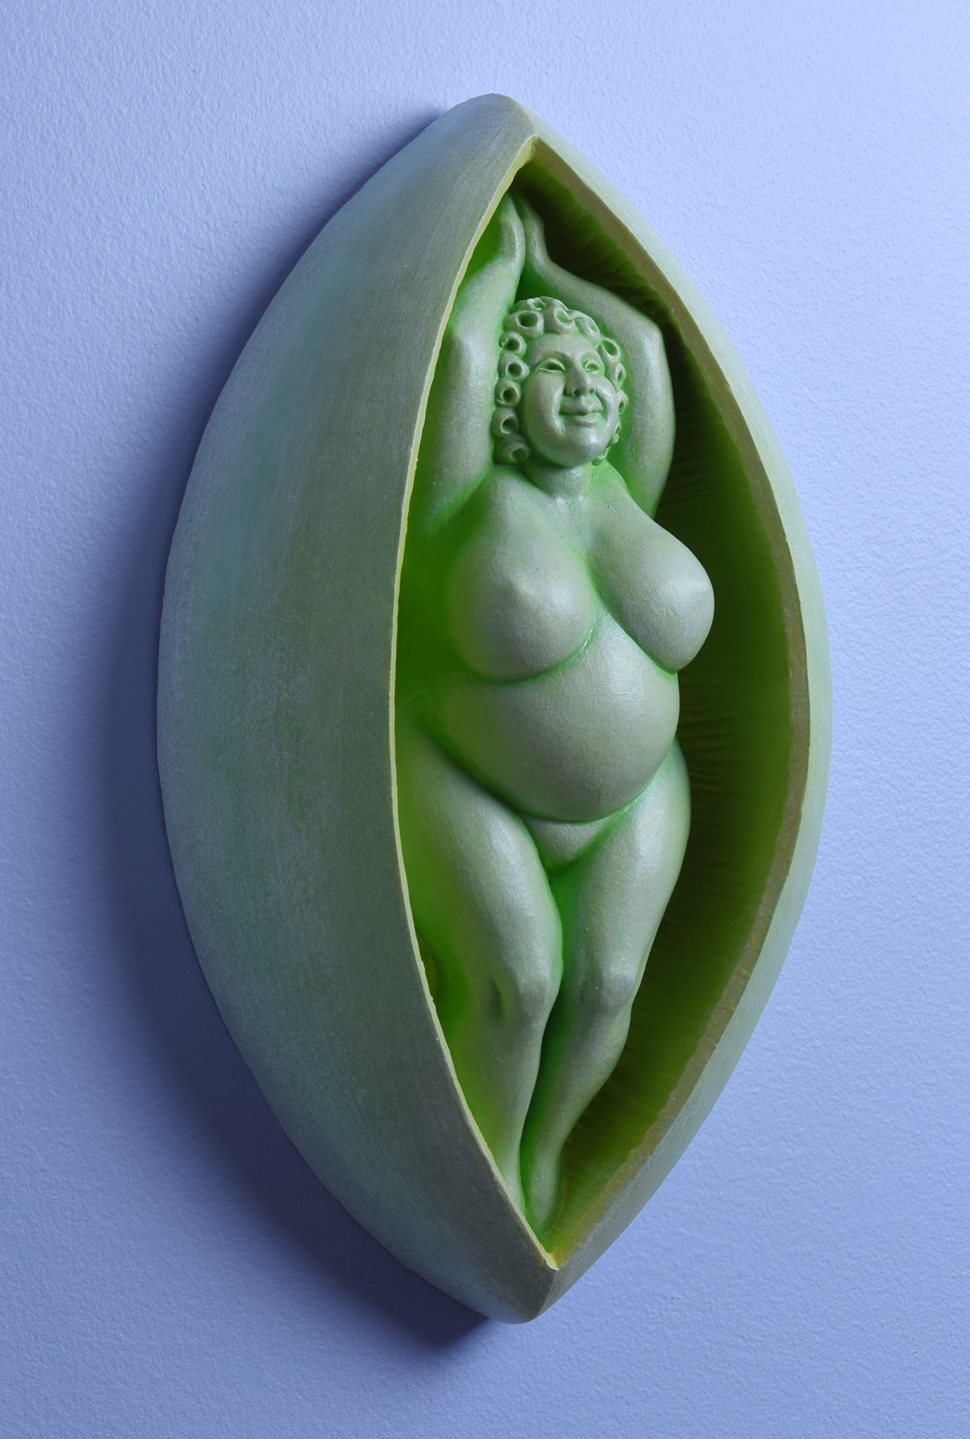 """Though she's sometimes called the """"Pea-pod Lady"""" to avoid offending delicate sensibilities,the shape of her shell is the reference you think it is."""